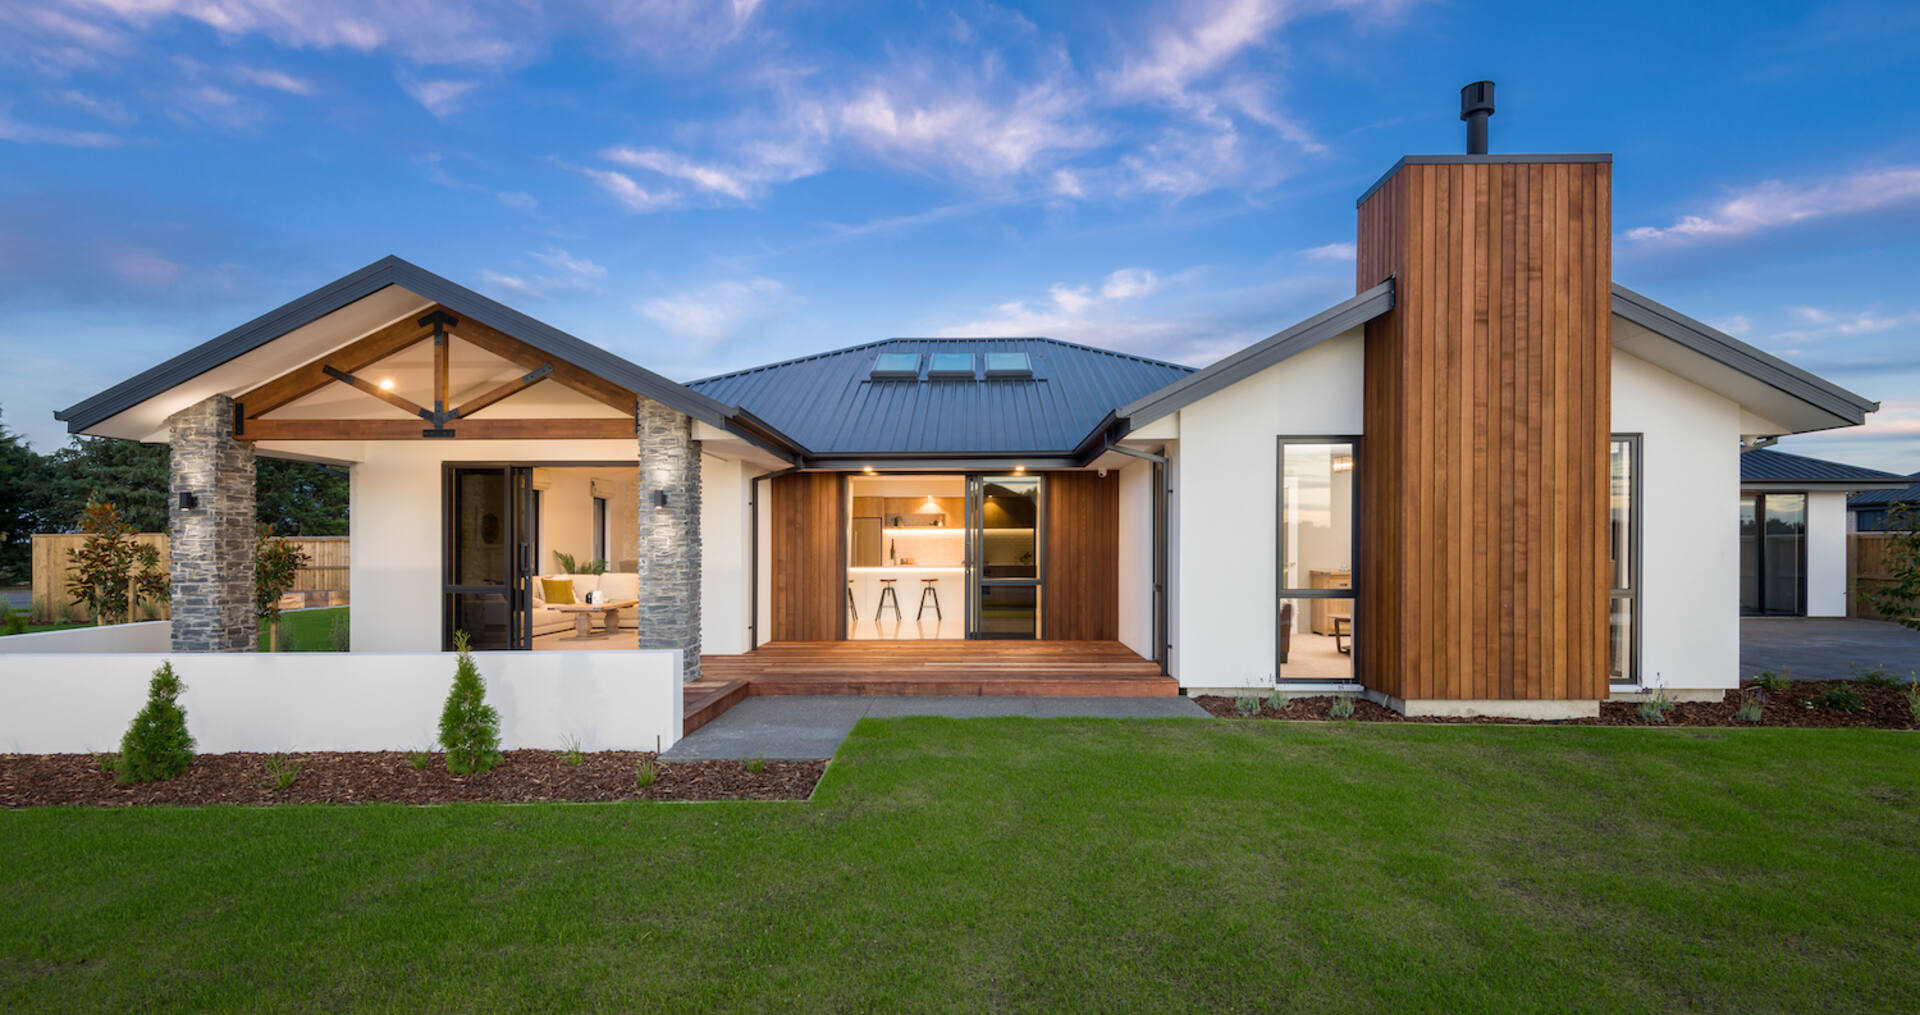 ROOFING SERIES: Why the right roof should be a high priority